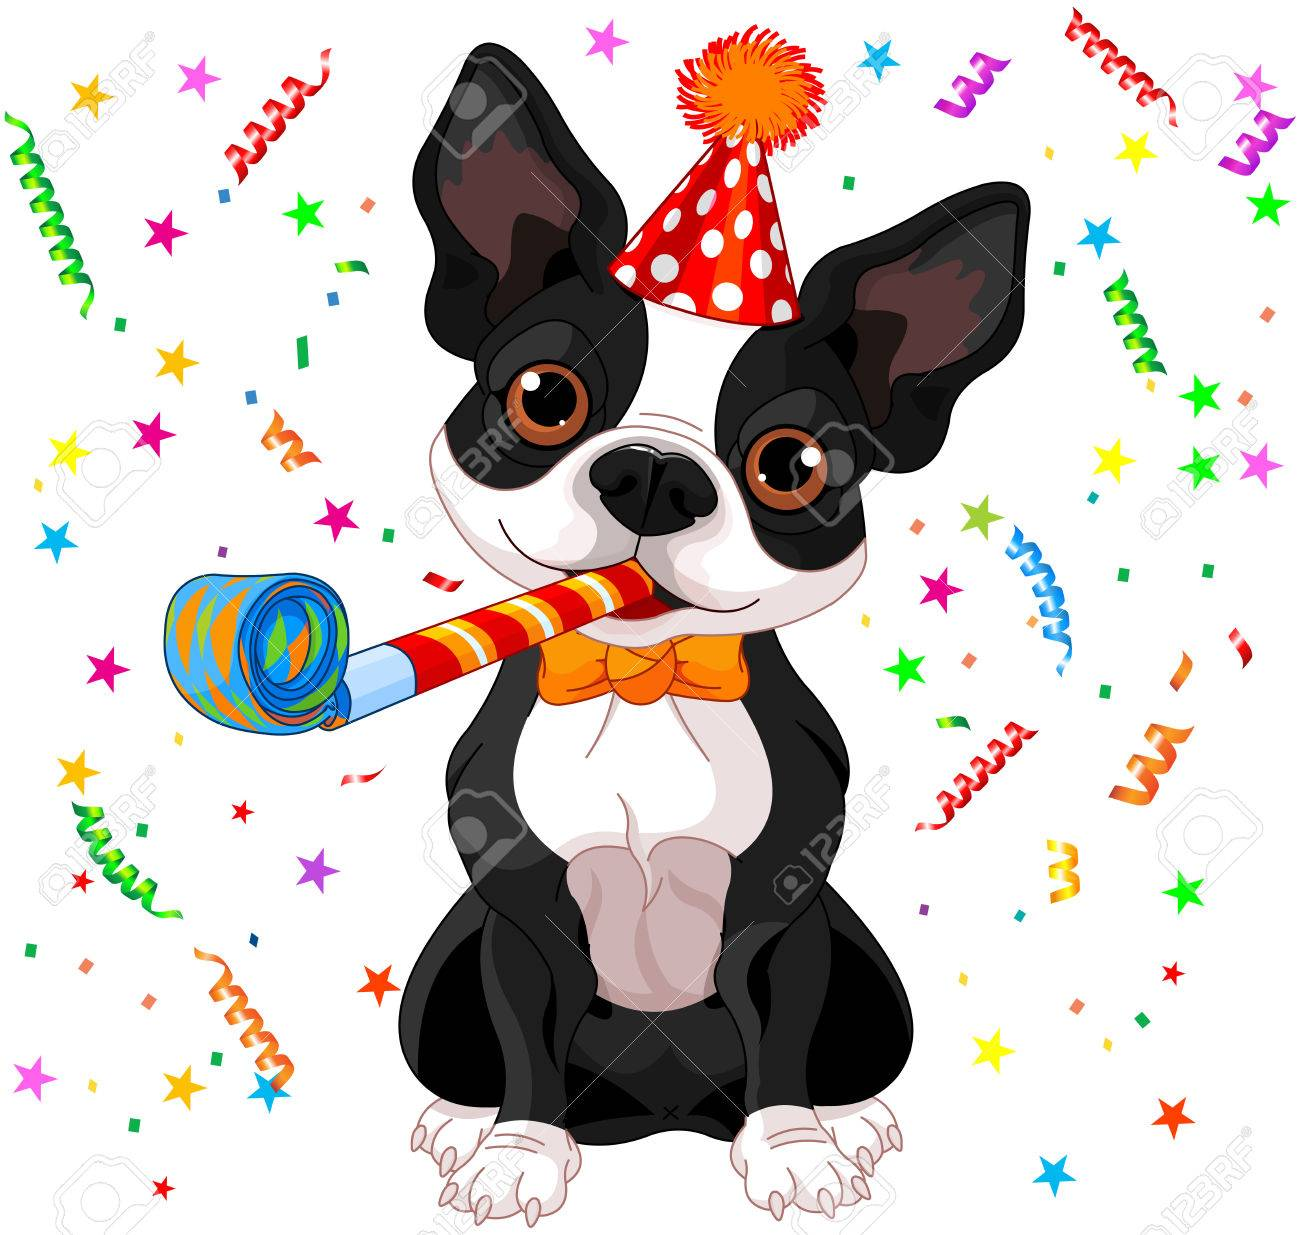 Grognements - agressivité: ressources alimentaires (os, gamelle, etc...) - Page 9 35588778-illustration-of-cute-boston-terrier-celebrating